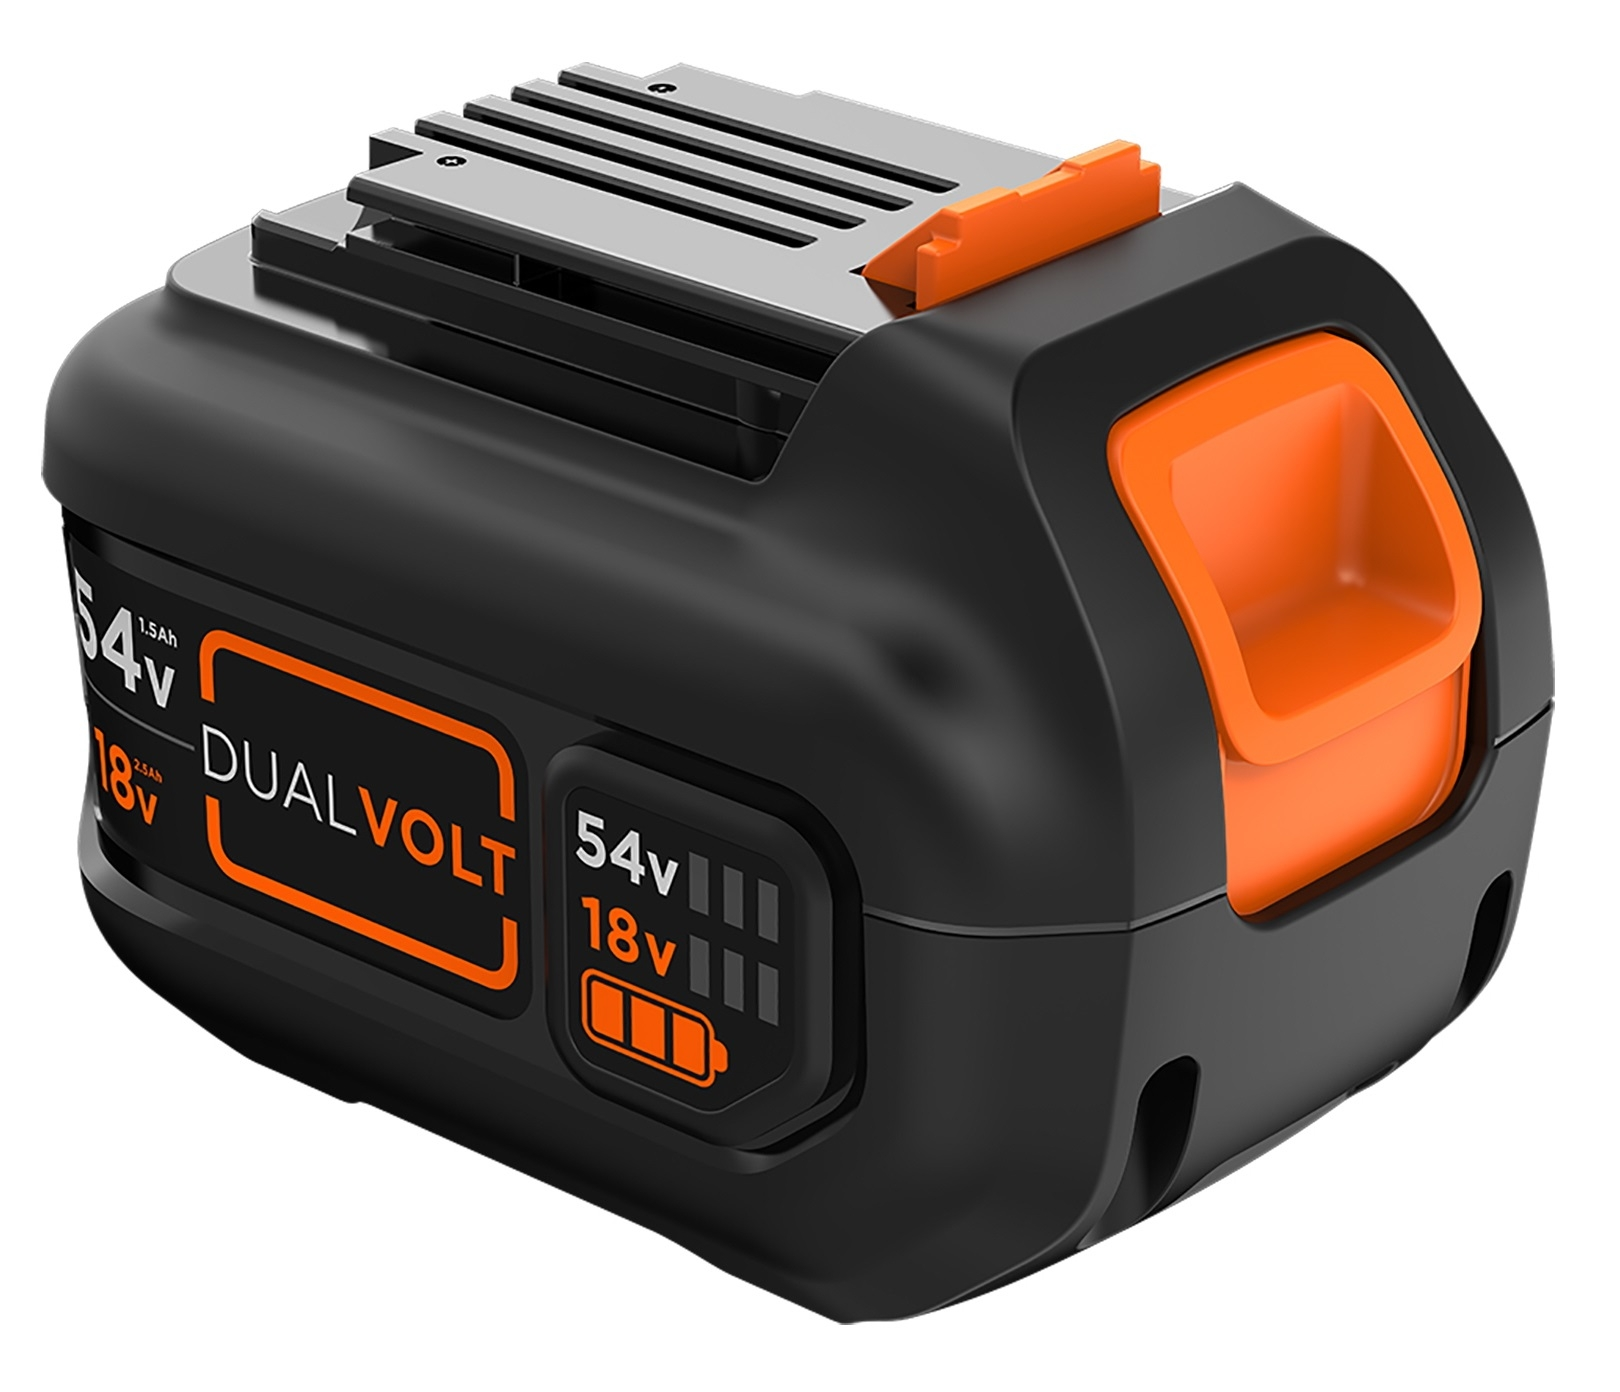 Аккумулятор DualVolt (54/18 В, 1.5 А·ч, Li-Ion) BLACK+DECKER BL1554-XJ BL1554-XJ